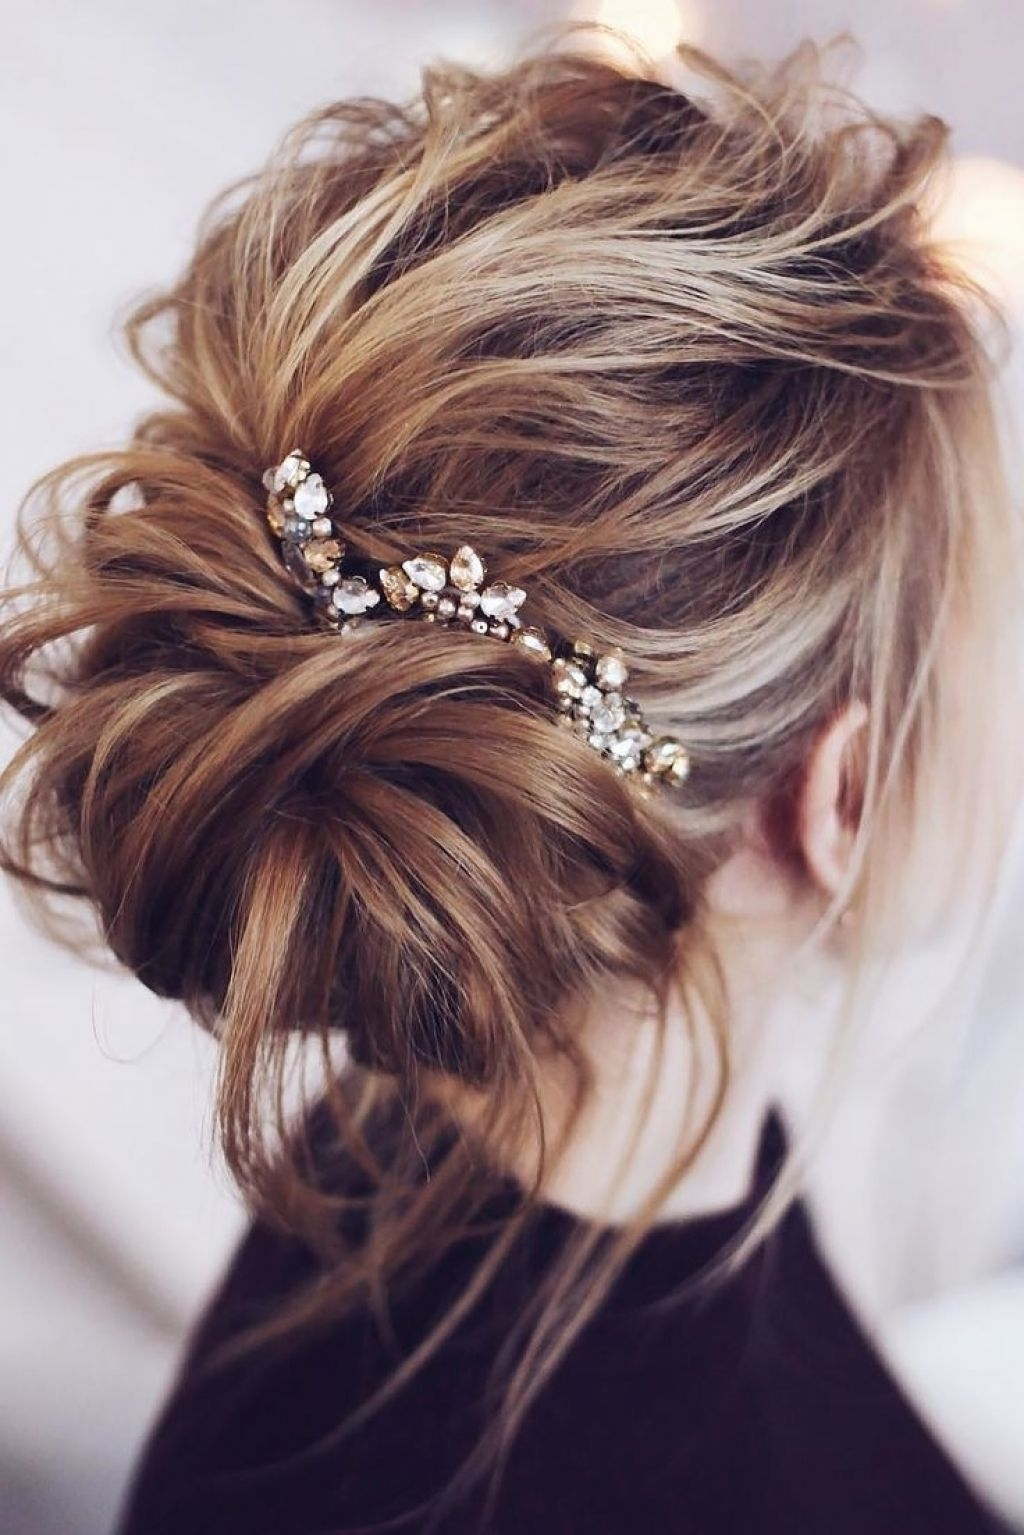 √ 24+ Nice Hairstyles For A Wedding: Messy Low Bun Wedding Hair How Regarding Popular Low Bun Wedding Hairstyles (View 1 of 15)